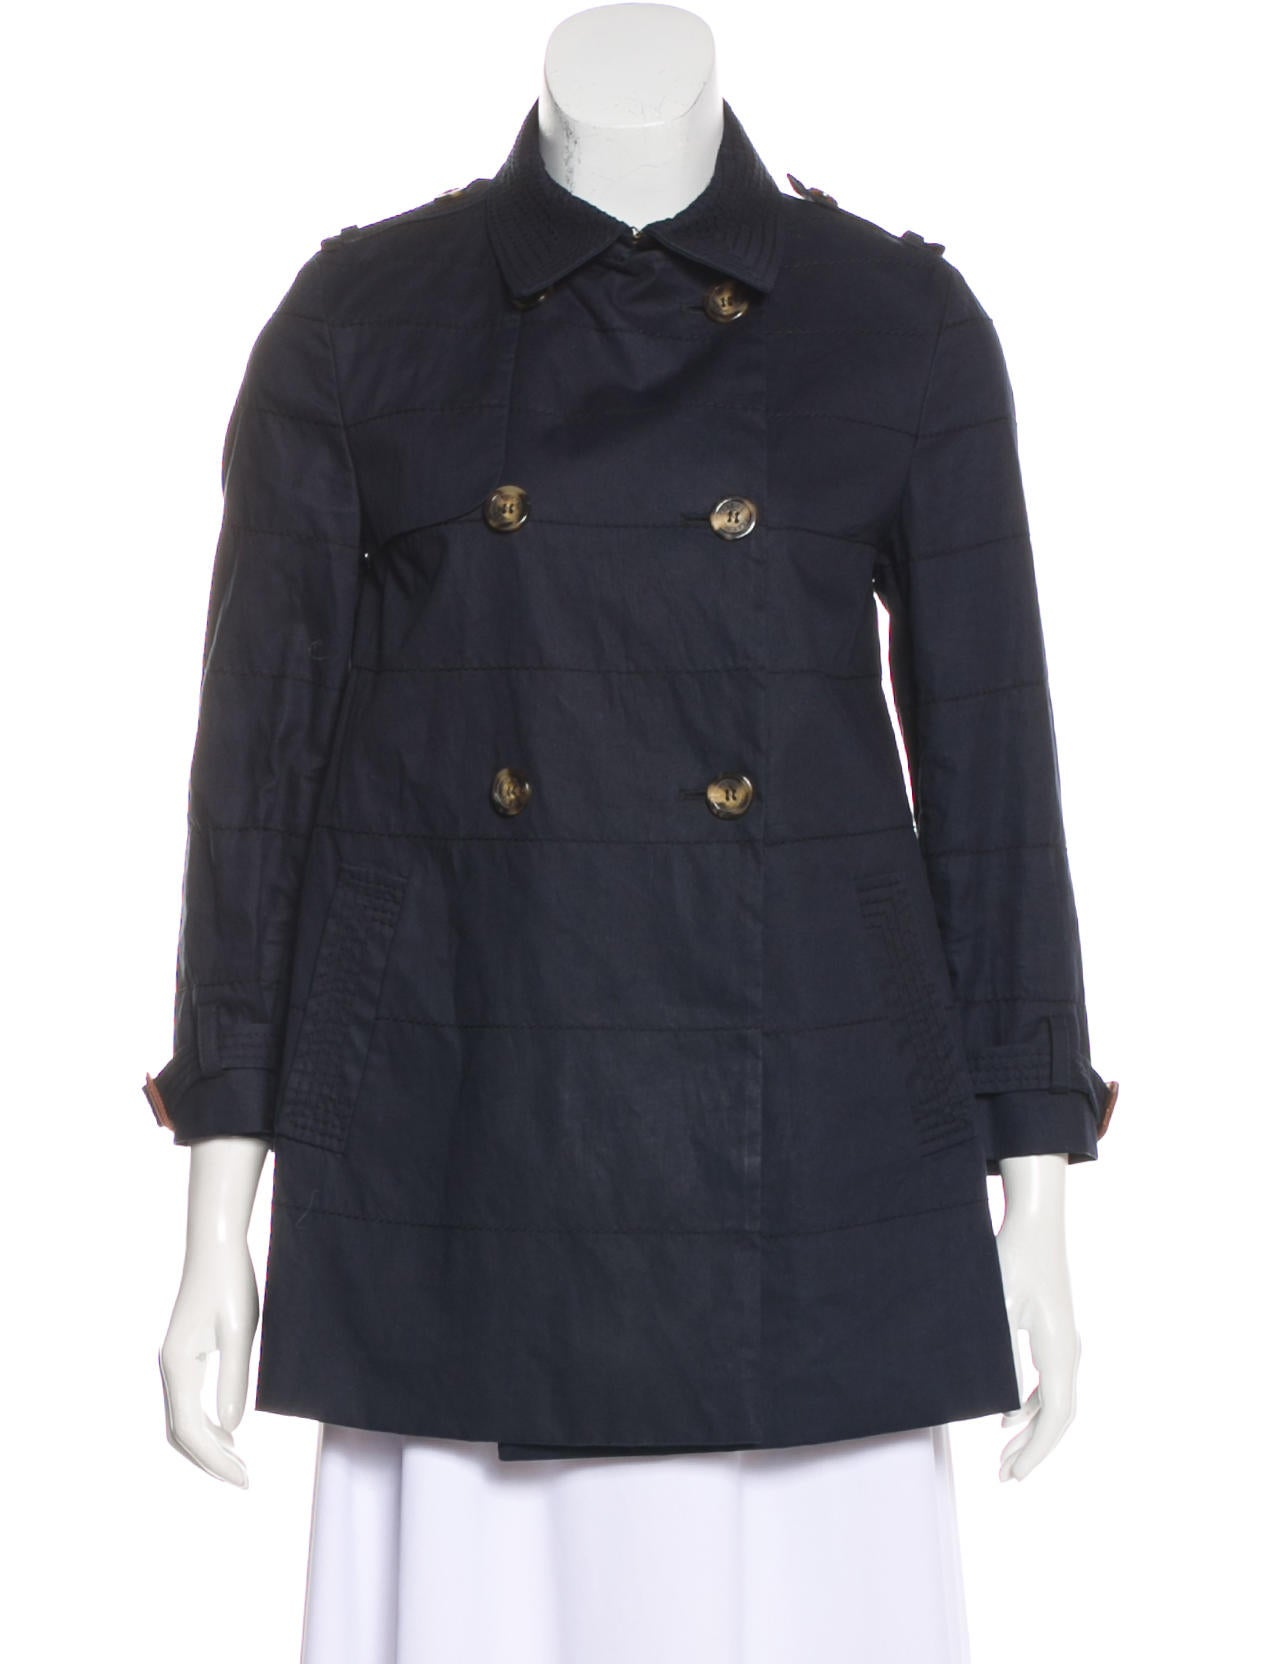 981d287d5a07 Moncler Double-Breasted Short Coat - Clothing - MOC29770